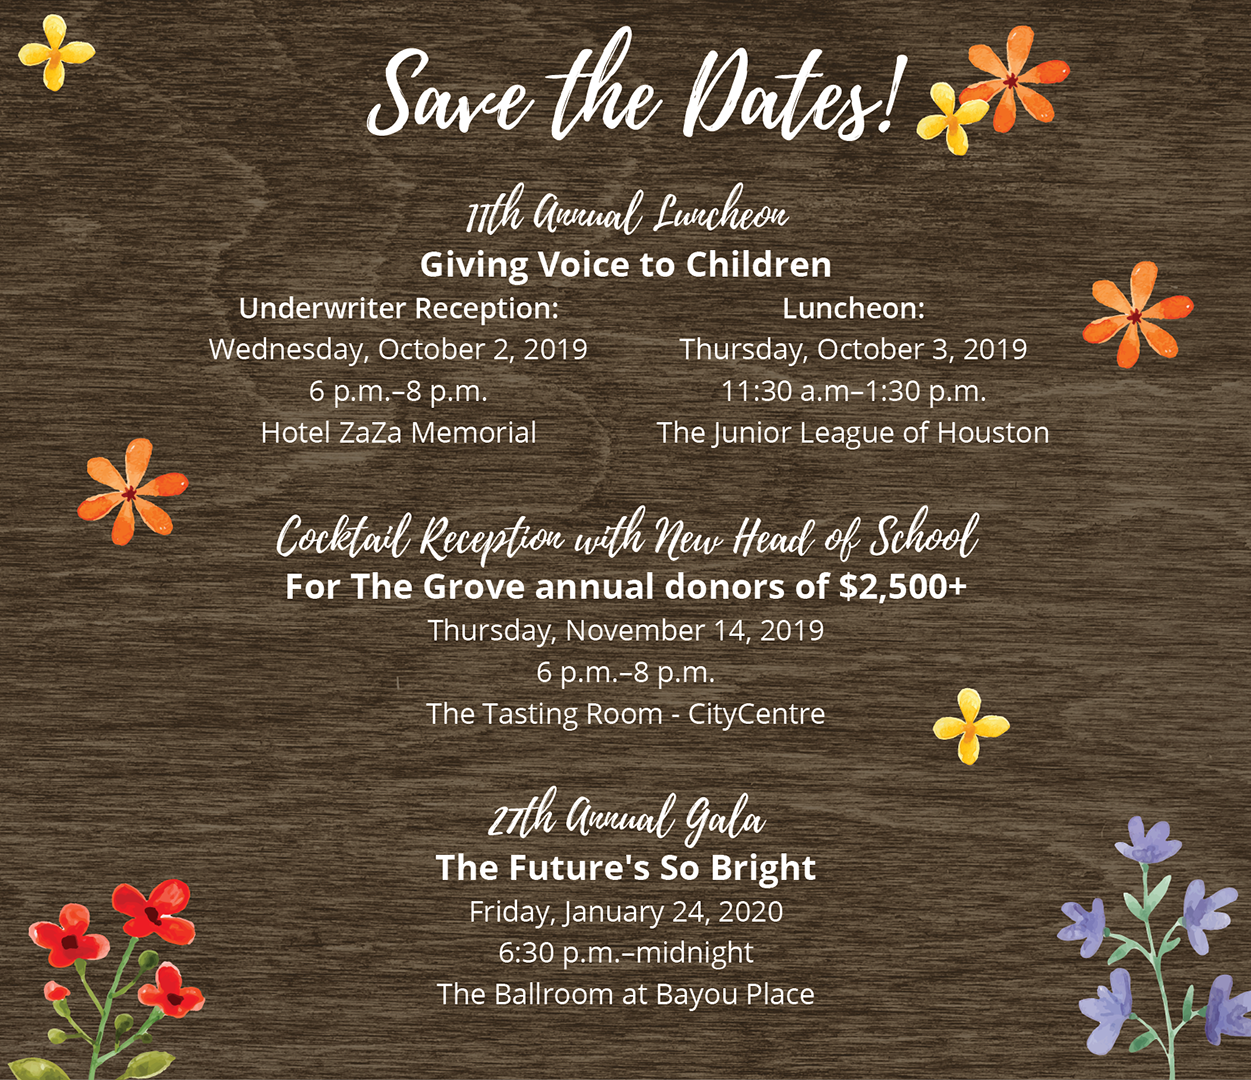 Save the Dates 2019